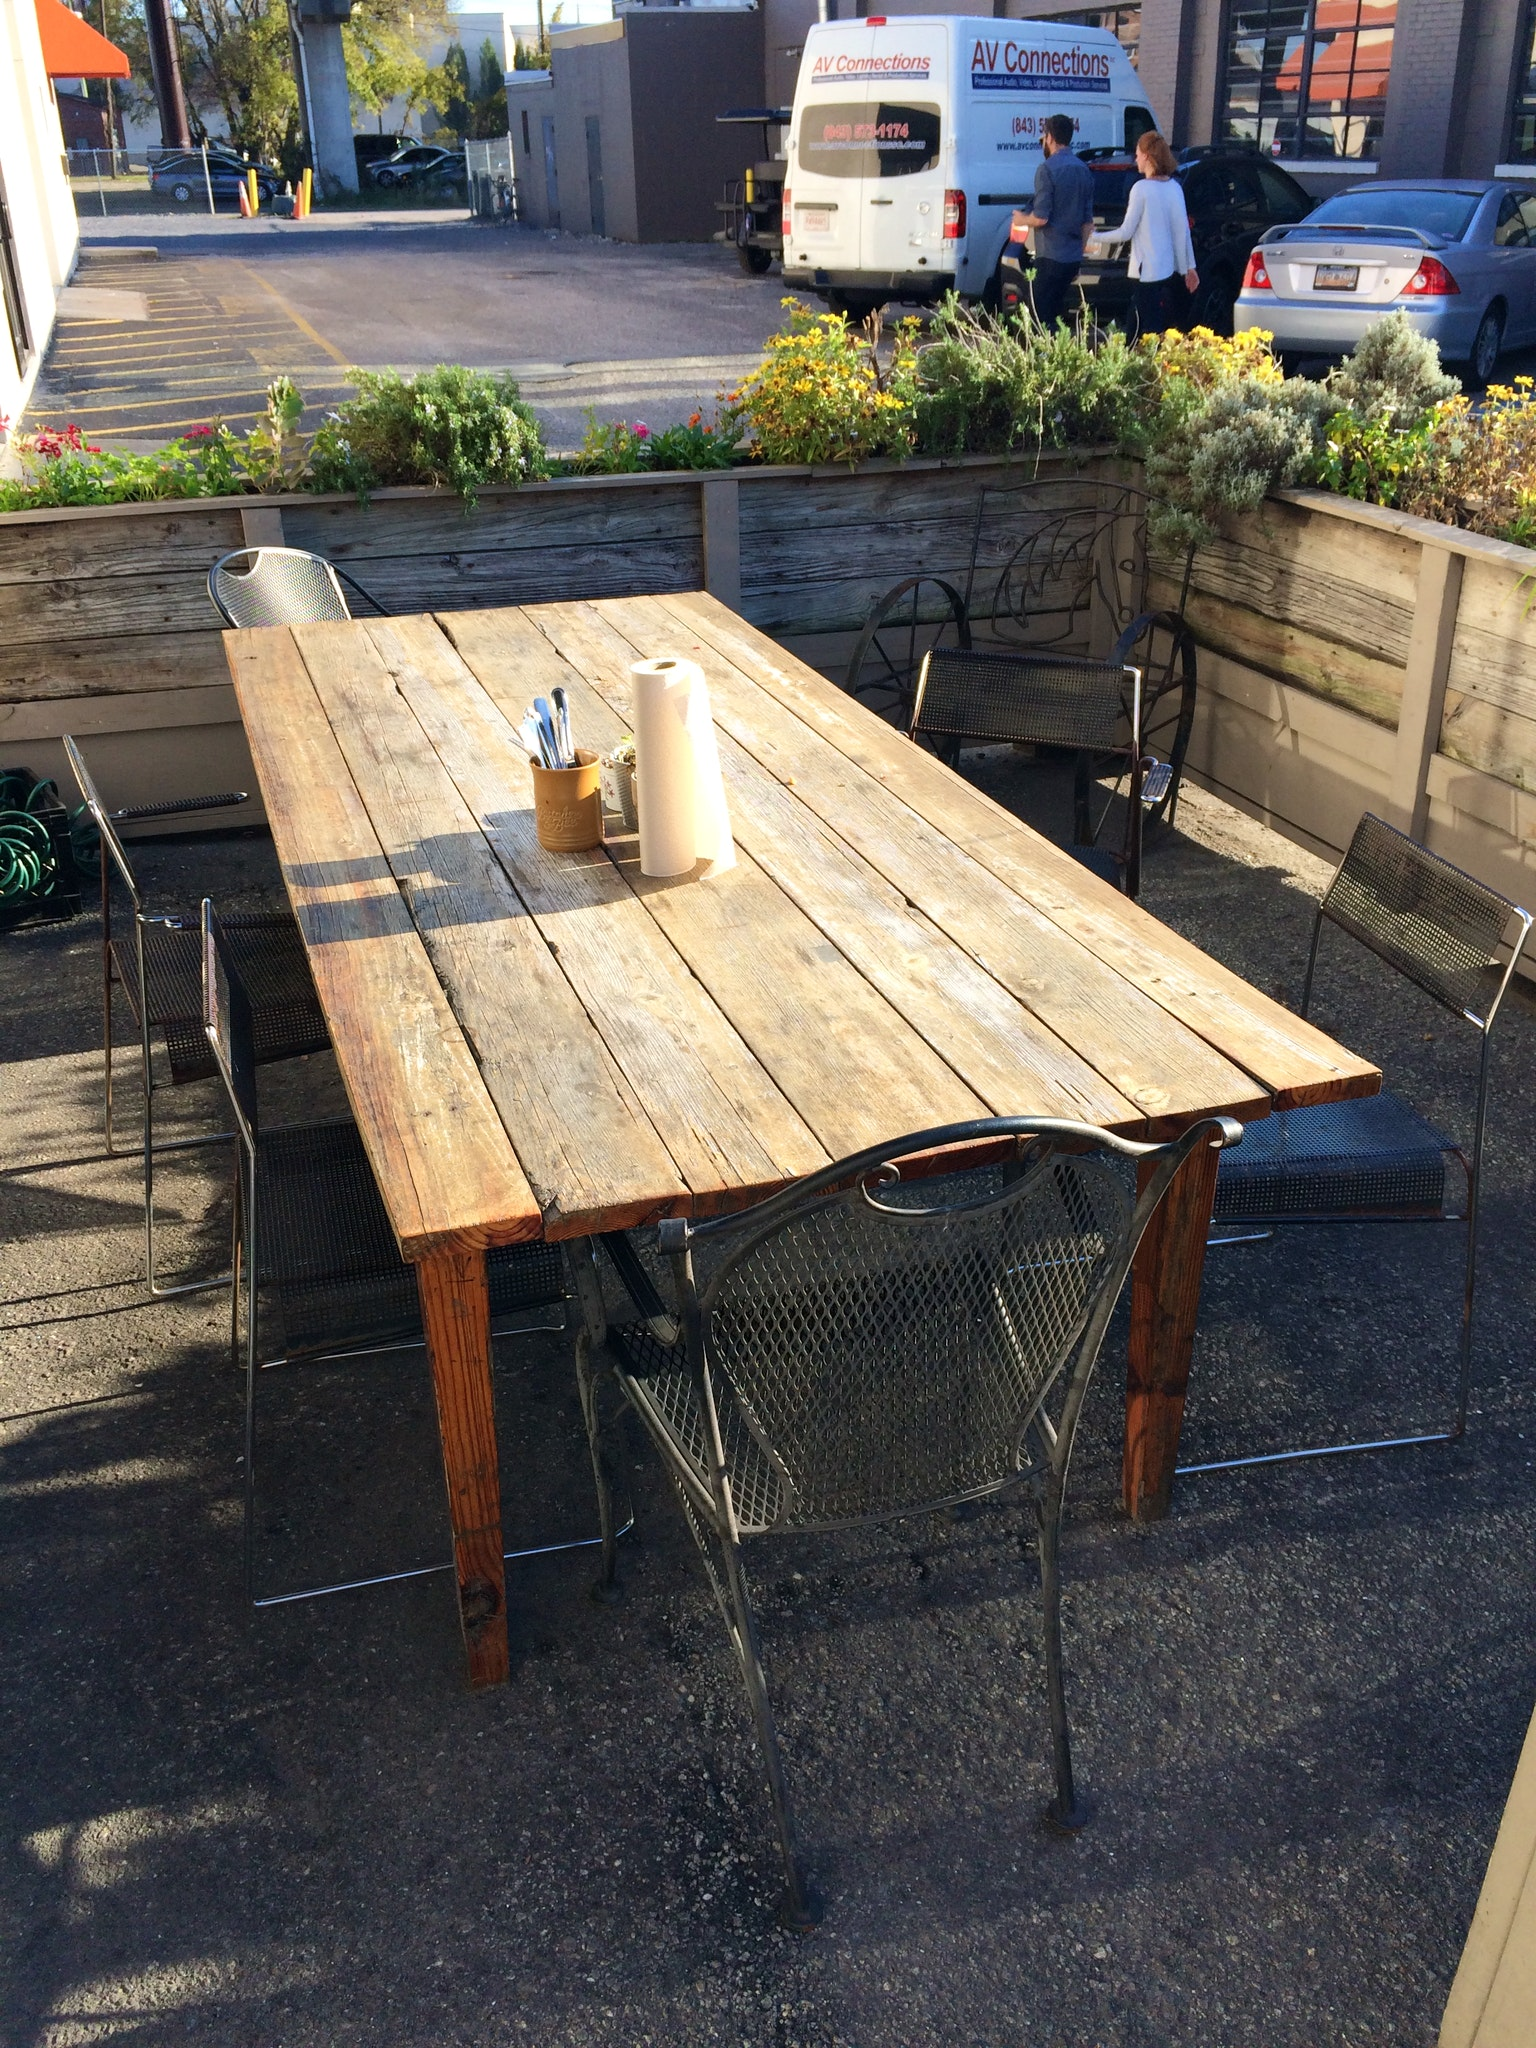 Patio seating at Butcher & Bee